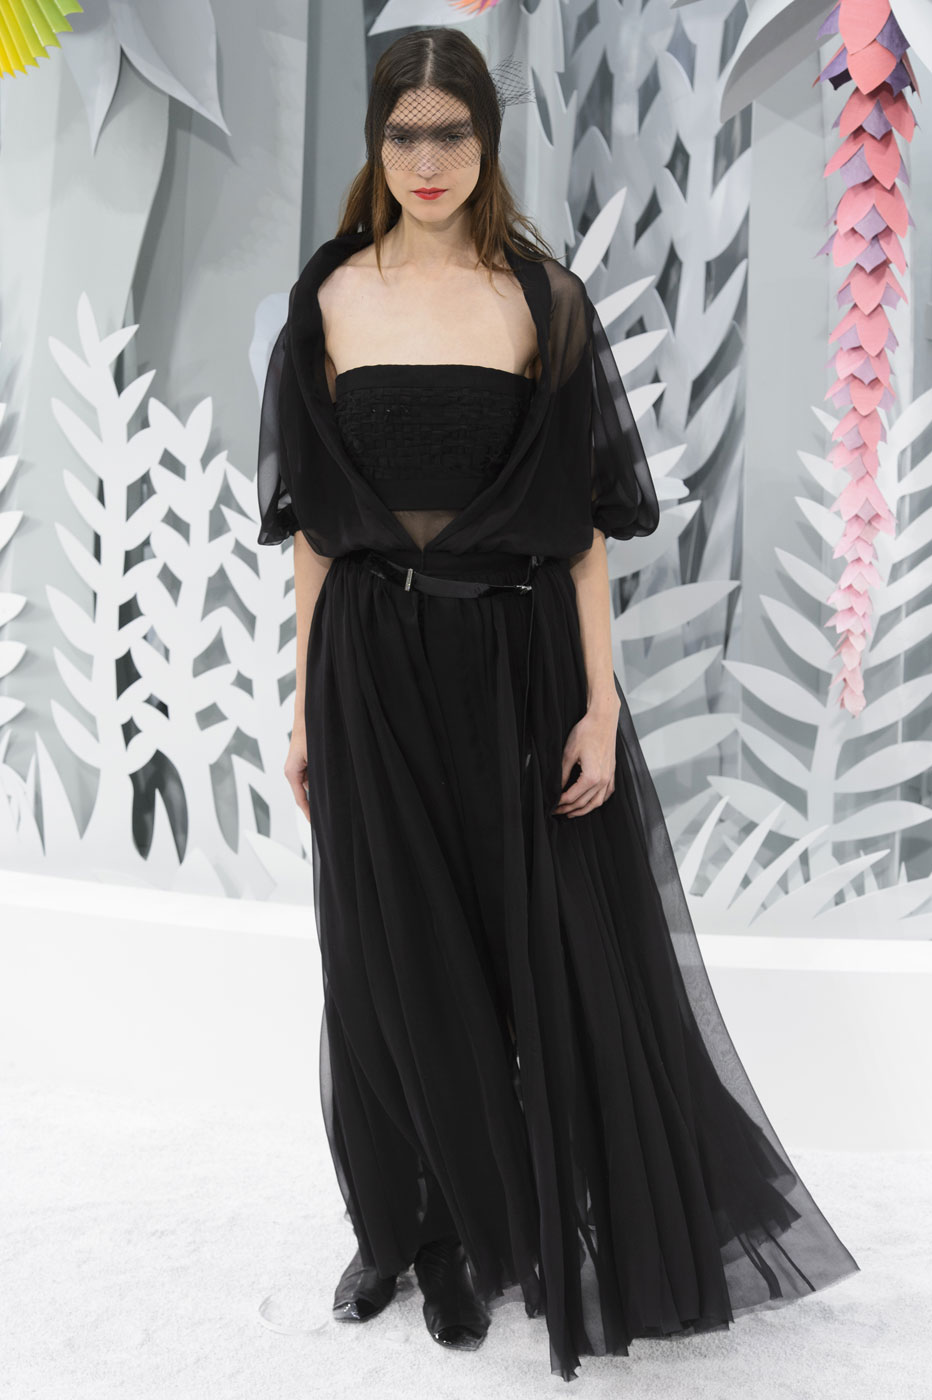 Chanel-fashion-runway-show-haute-couture-paris-spring-summer-2015-the-impression-076